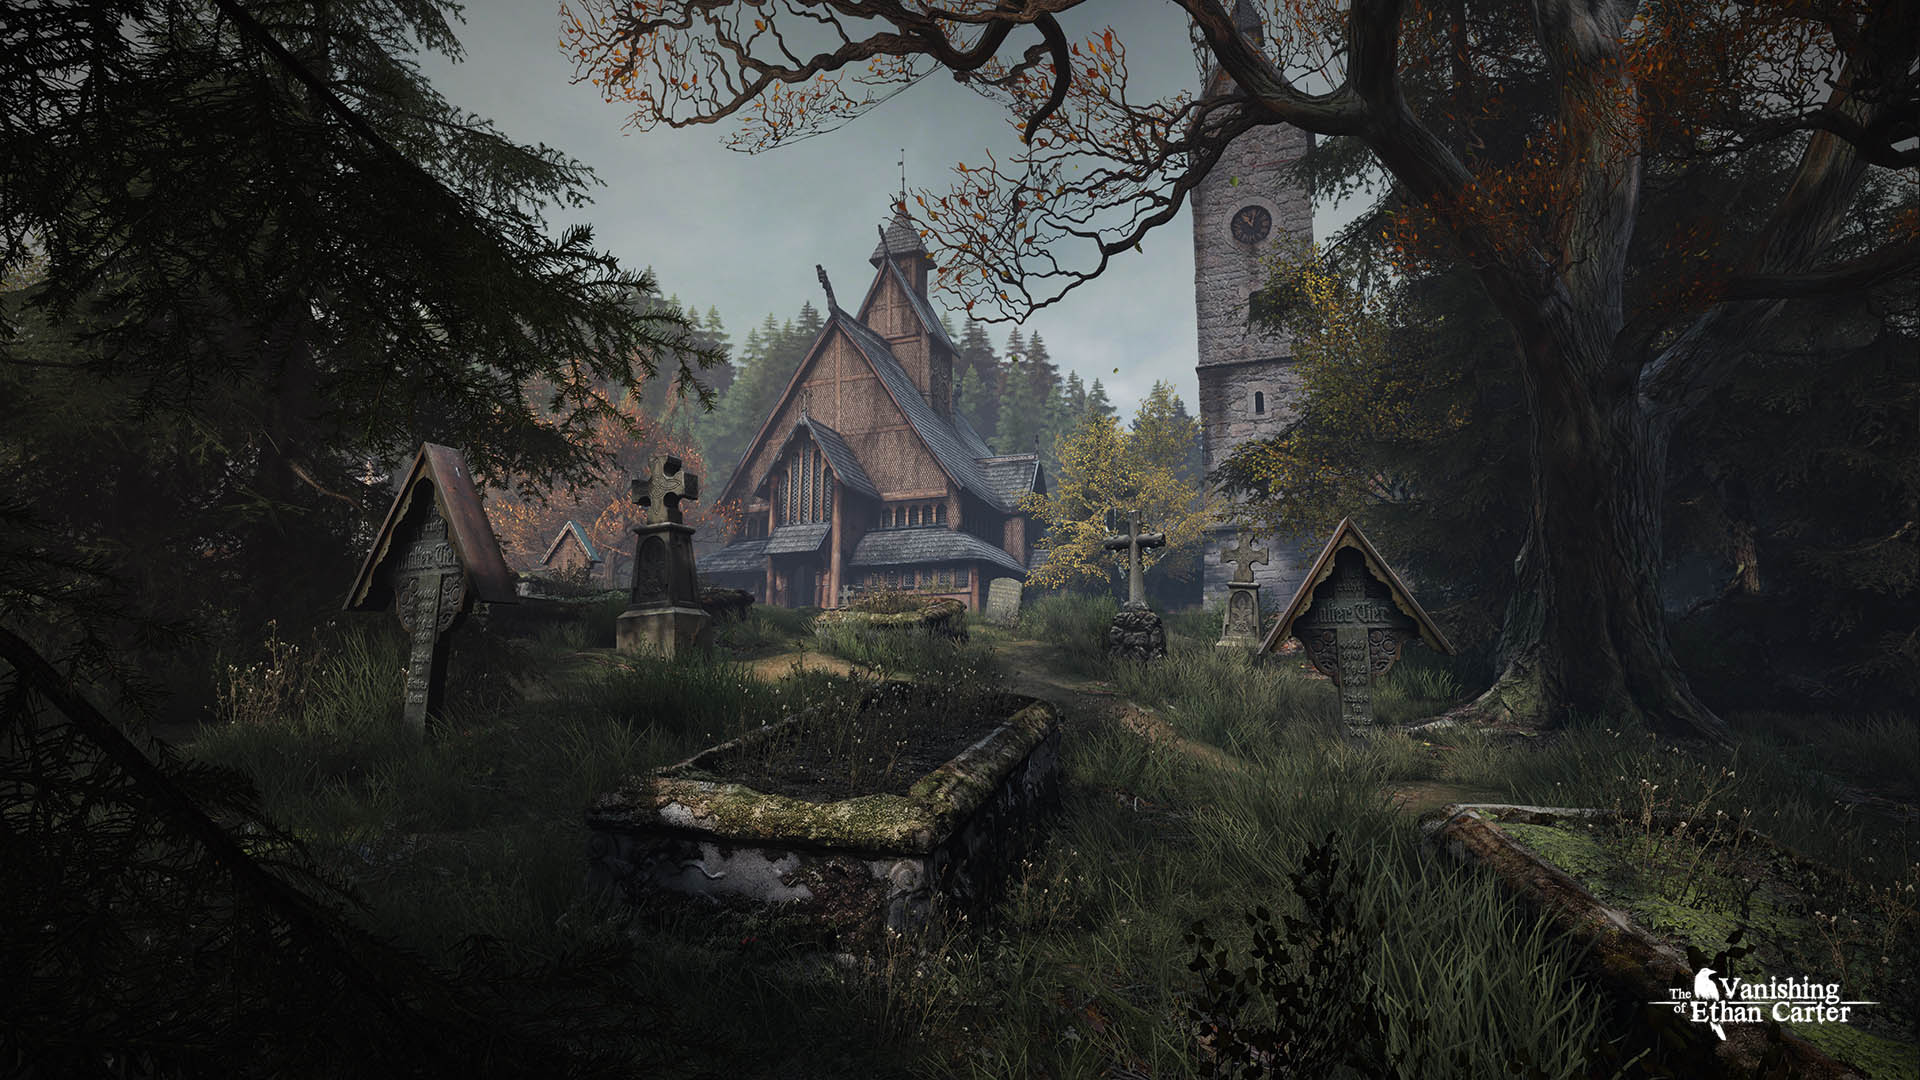 Photogrammetry - The Vanishing of Ethan Carter